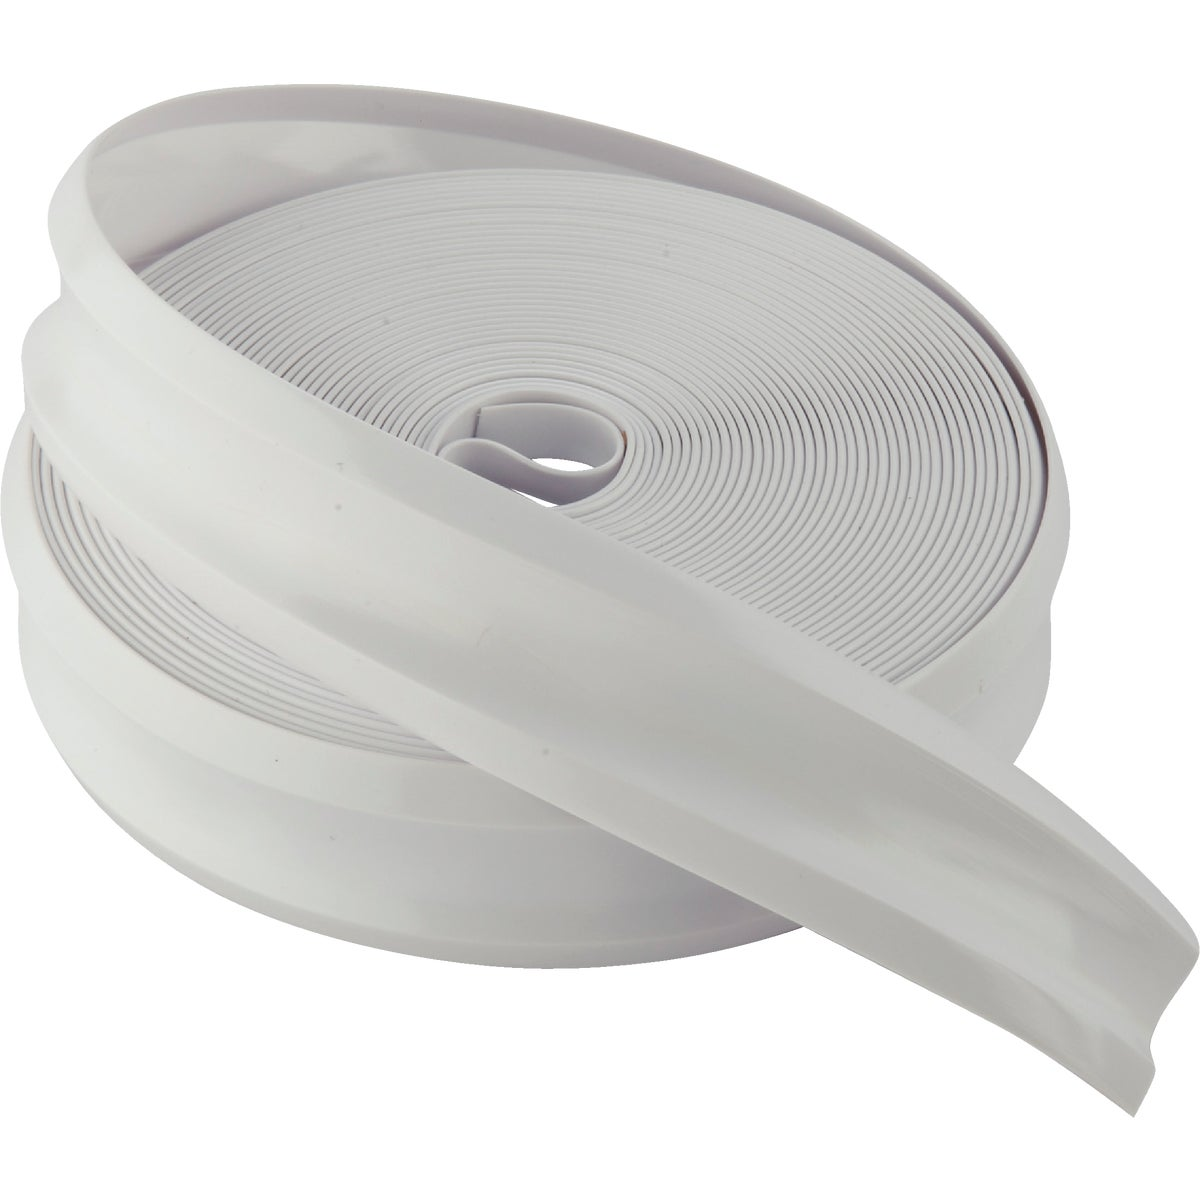 WHITE VINYL TRIM INSERT - 25103 by Camco Mfg.